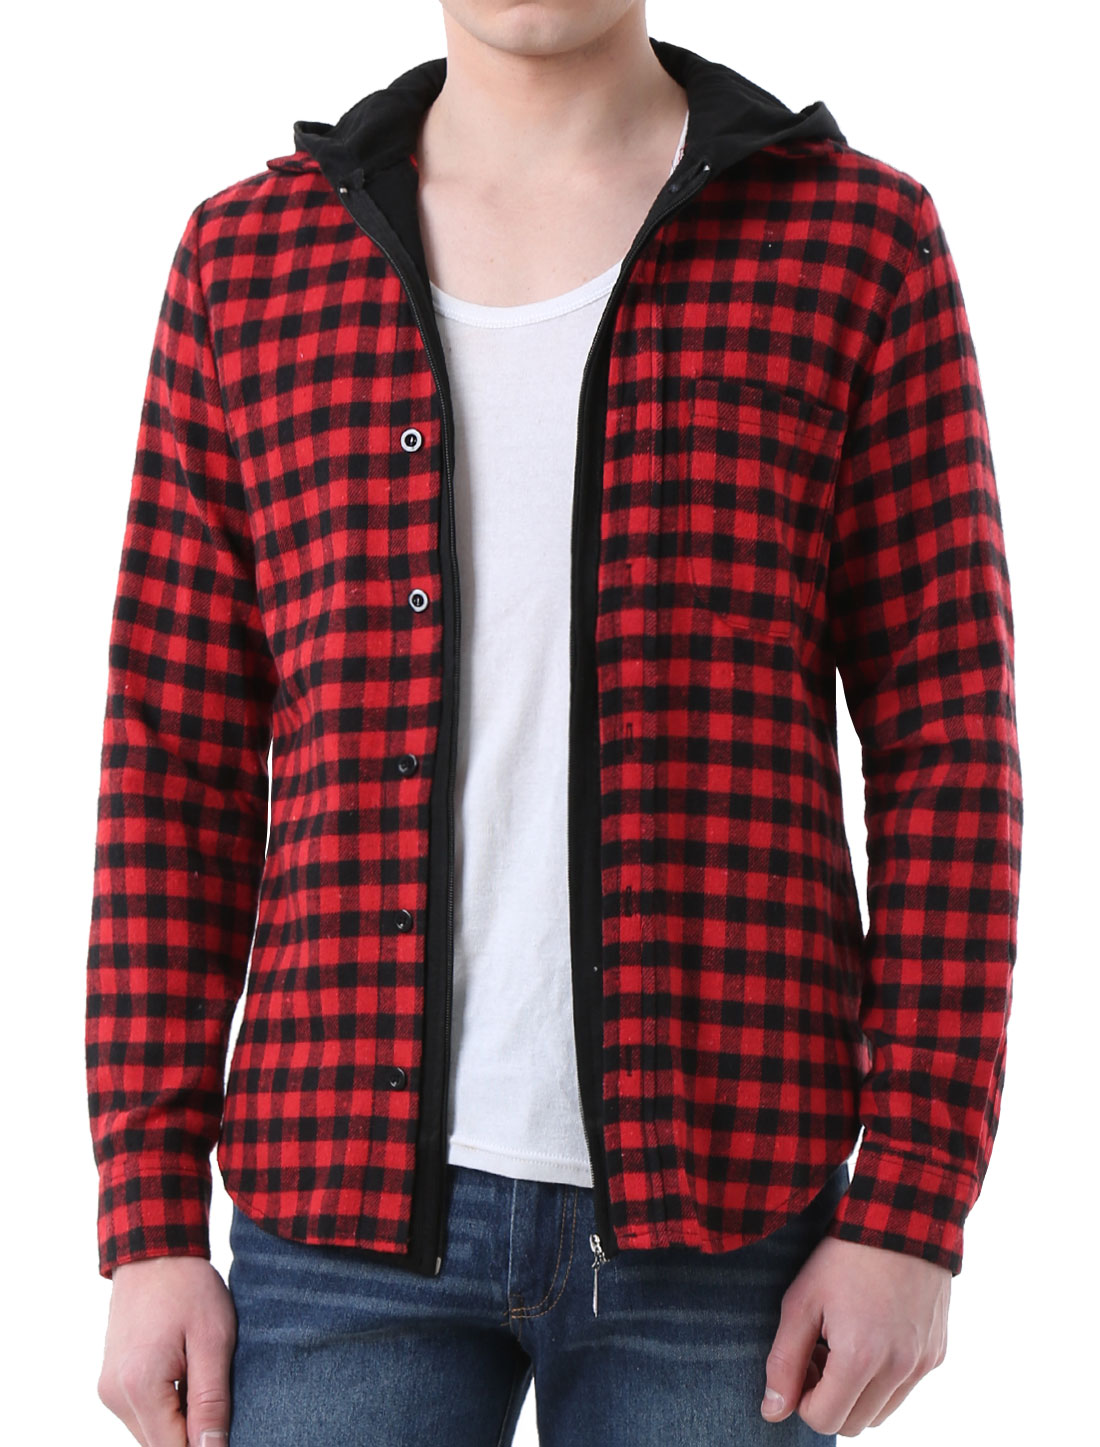 Men Stylish Contrast Check Pattern Long Sleeves Hooded Shirt Black Red S